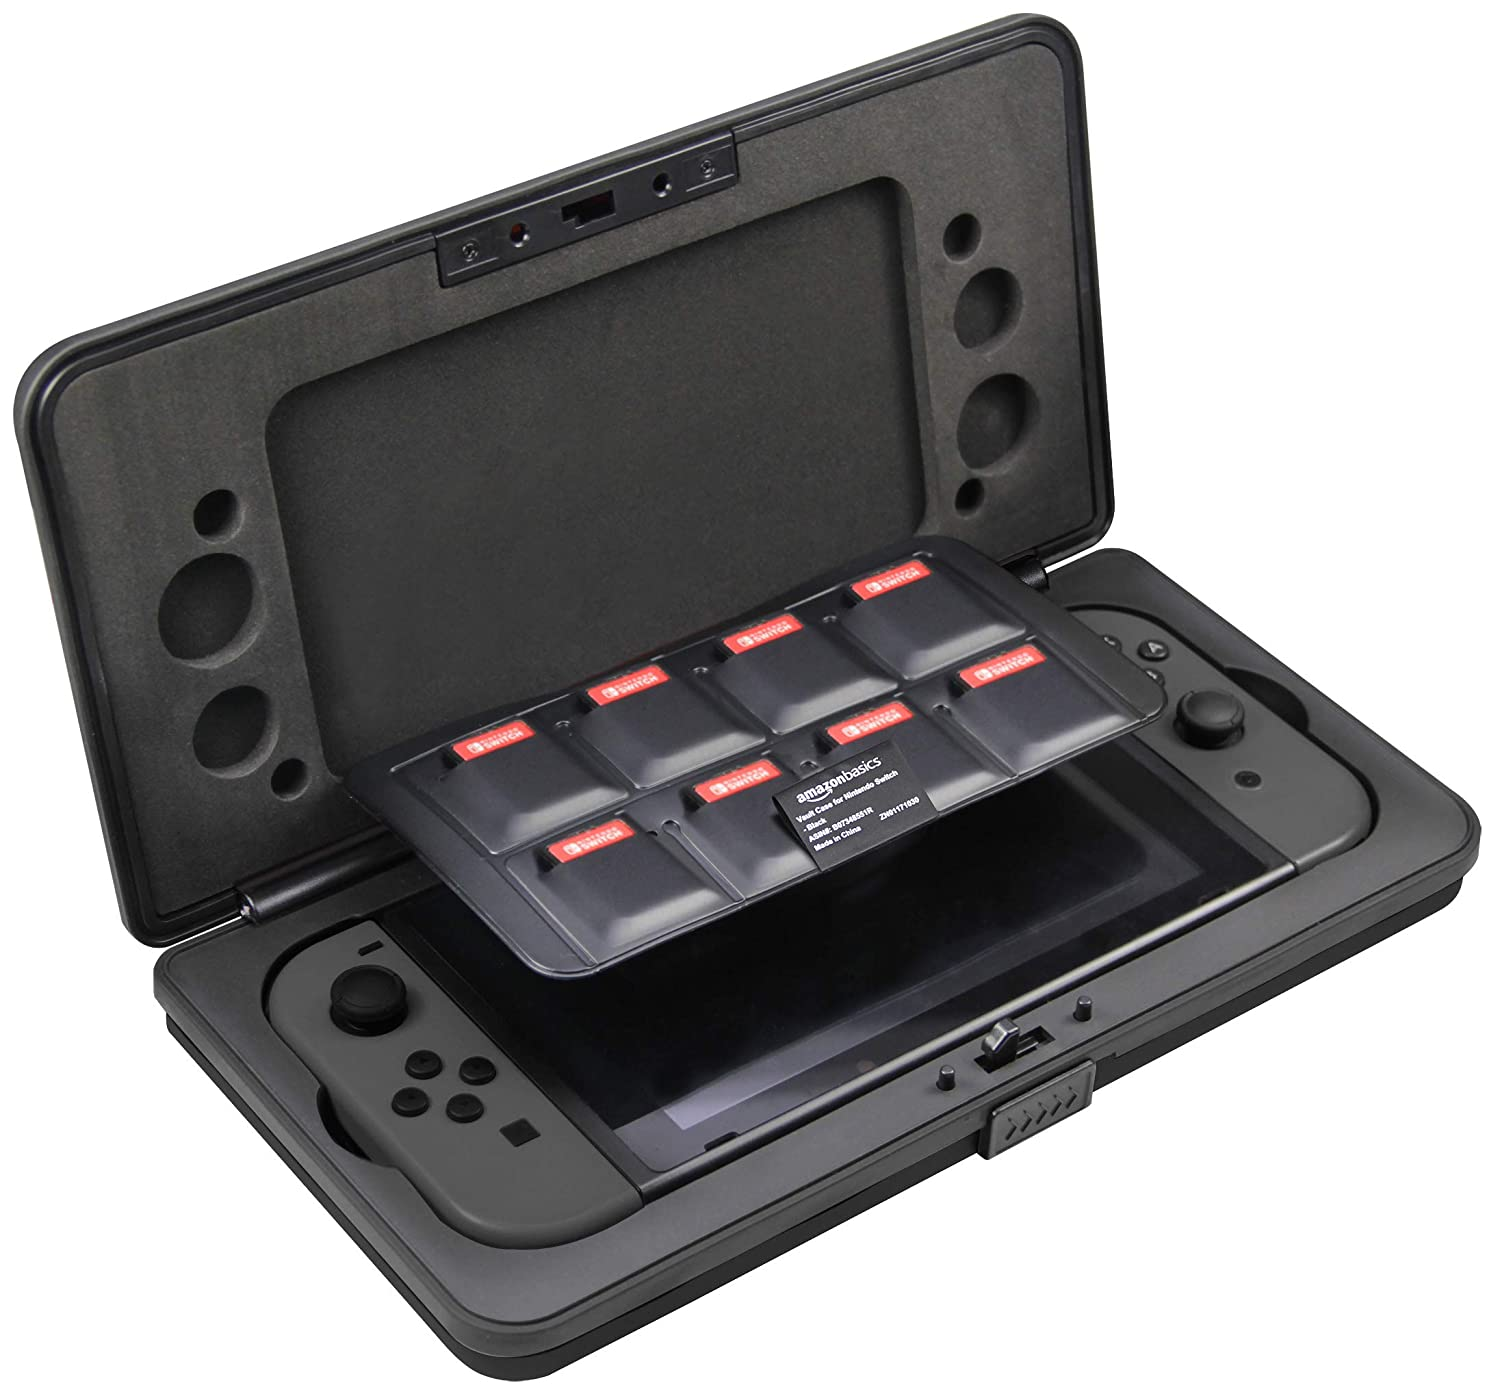 AmazonBasics Vault Case for Nintendo Switch And 8 Games - 10.5 x 5.5 x 2 Inches, Black